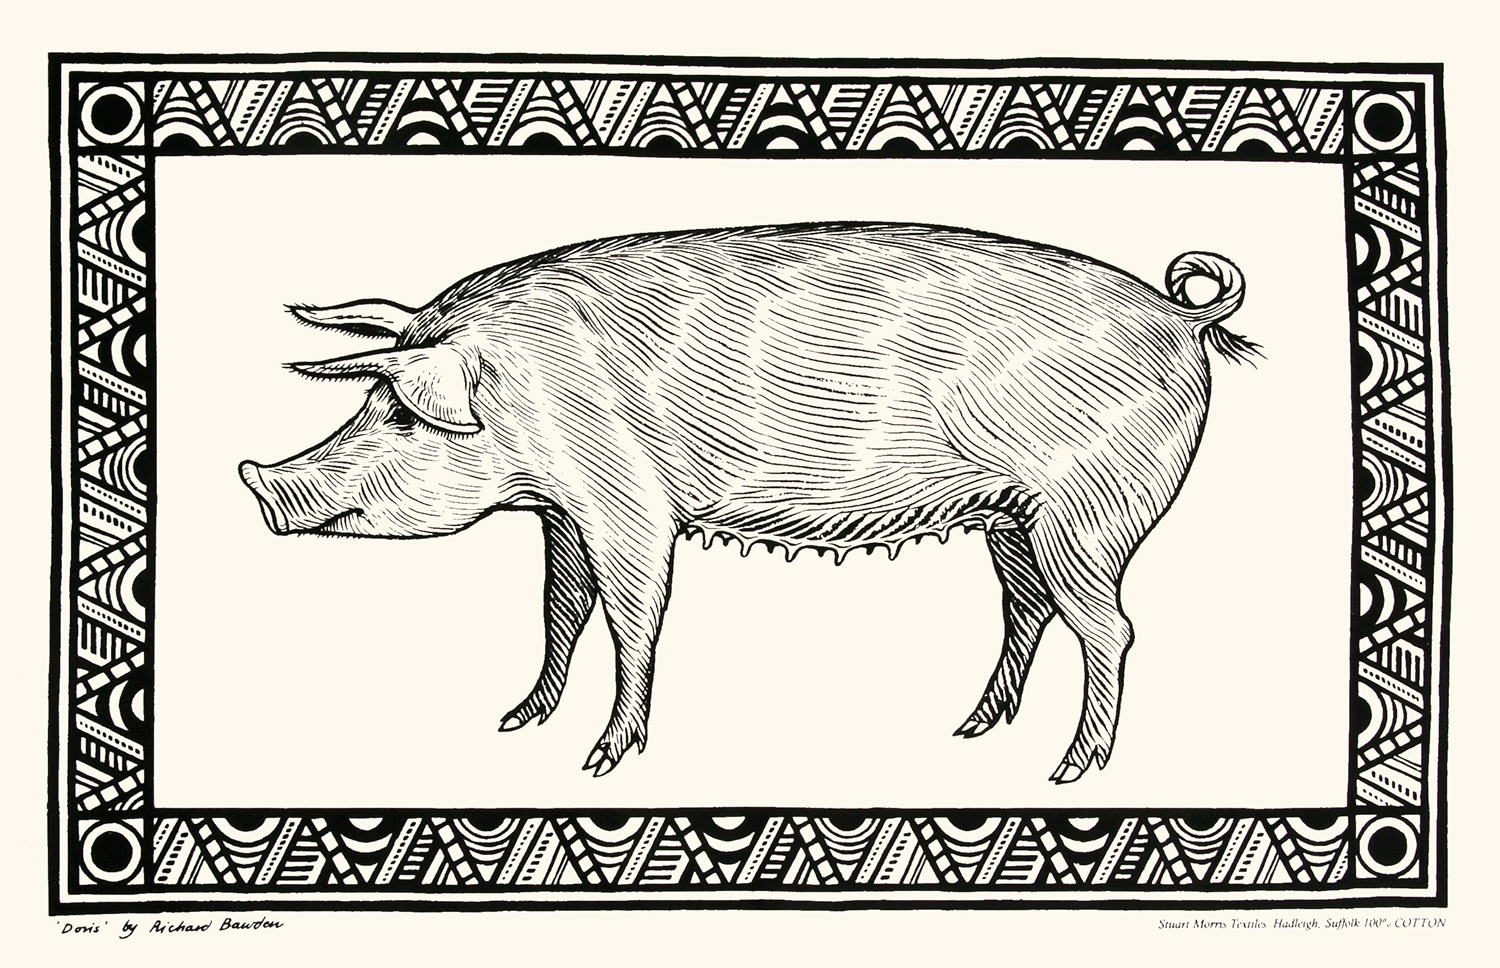 Tea Towel Pig by Richard Bawden